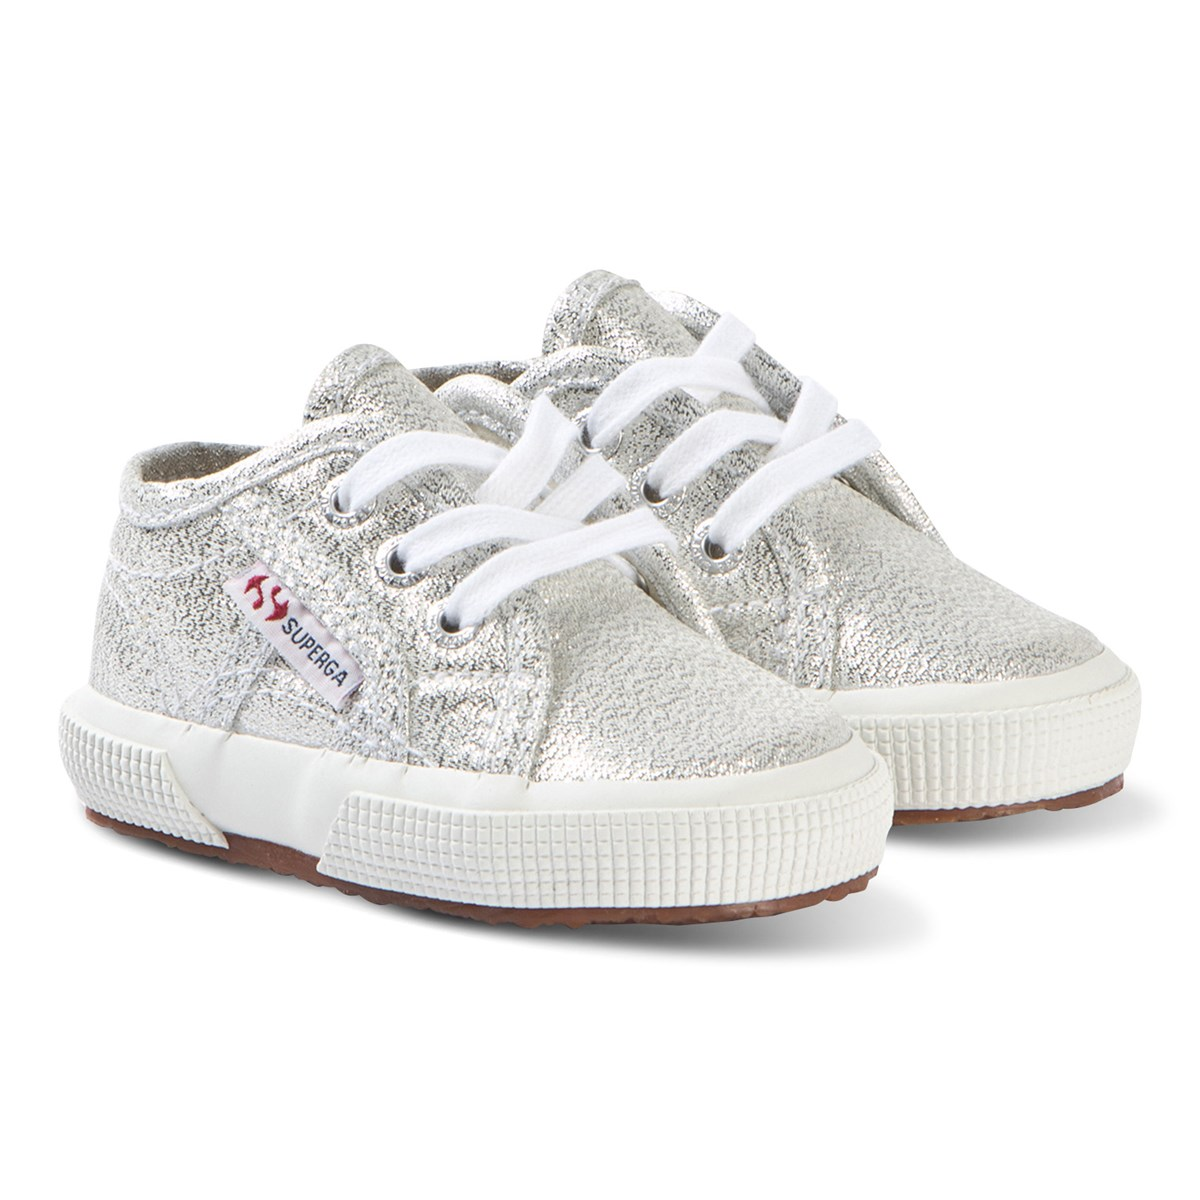 Infant Sneakers Superga Lameb Infant Sneakers Silver Metallic Babyshop